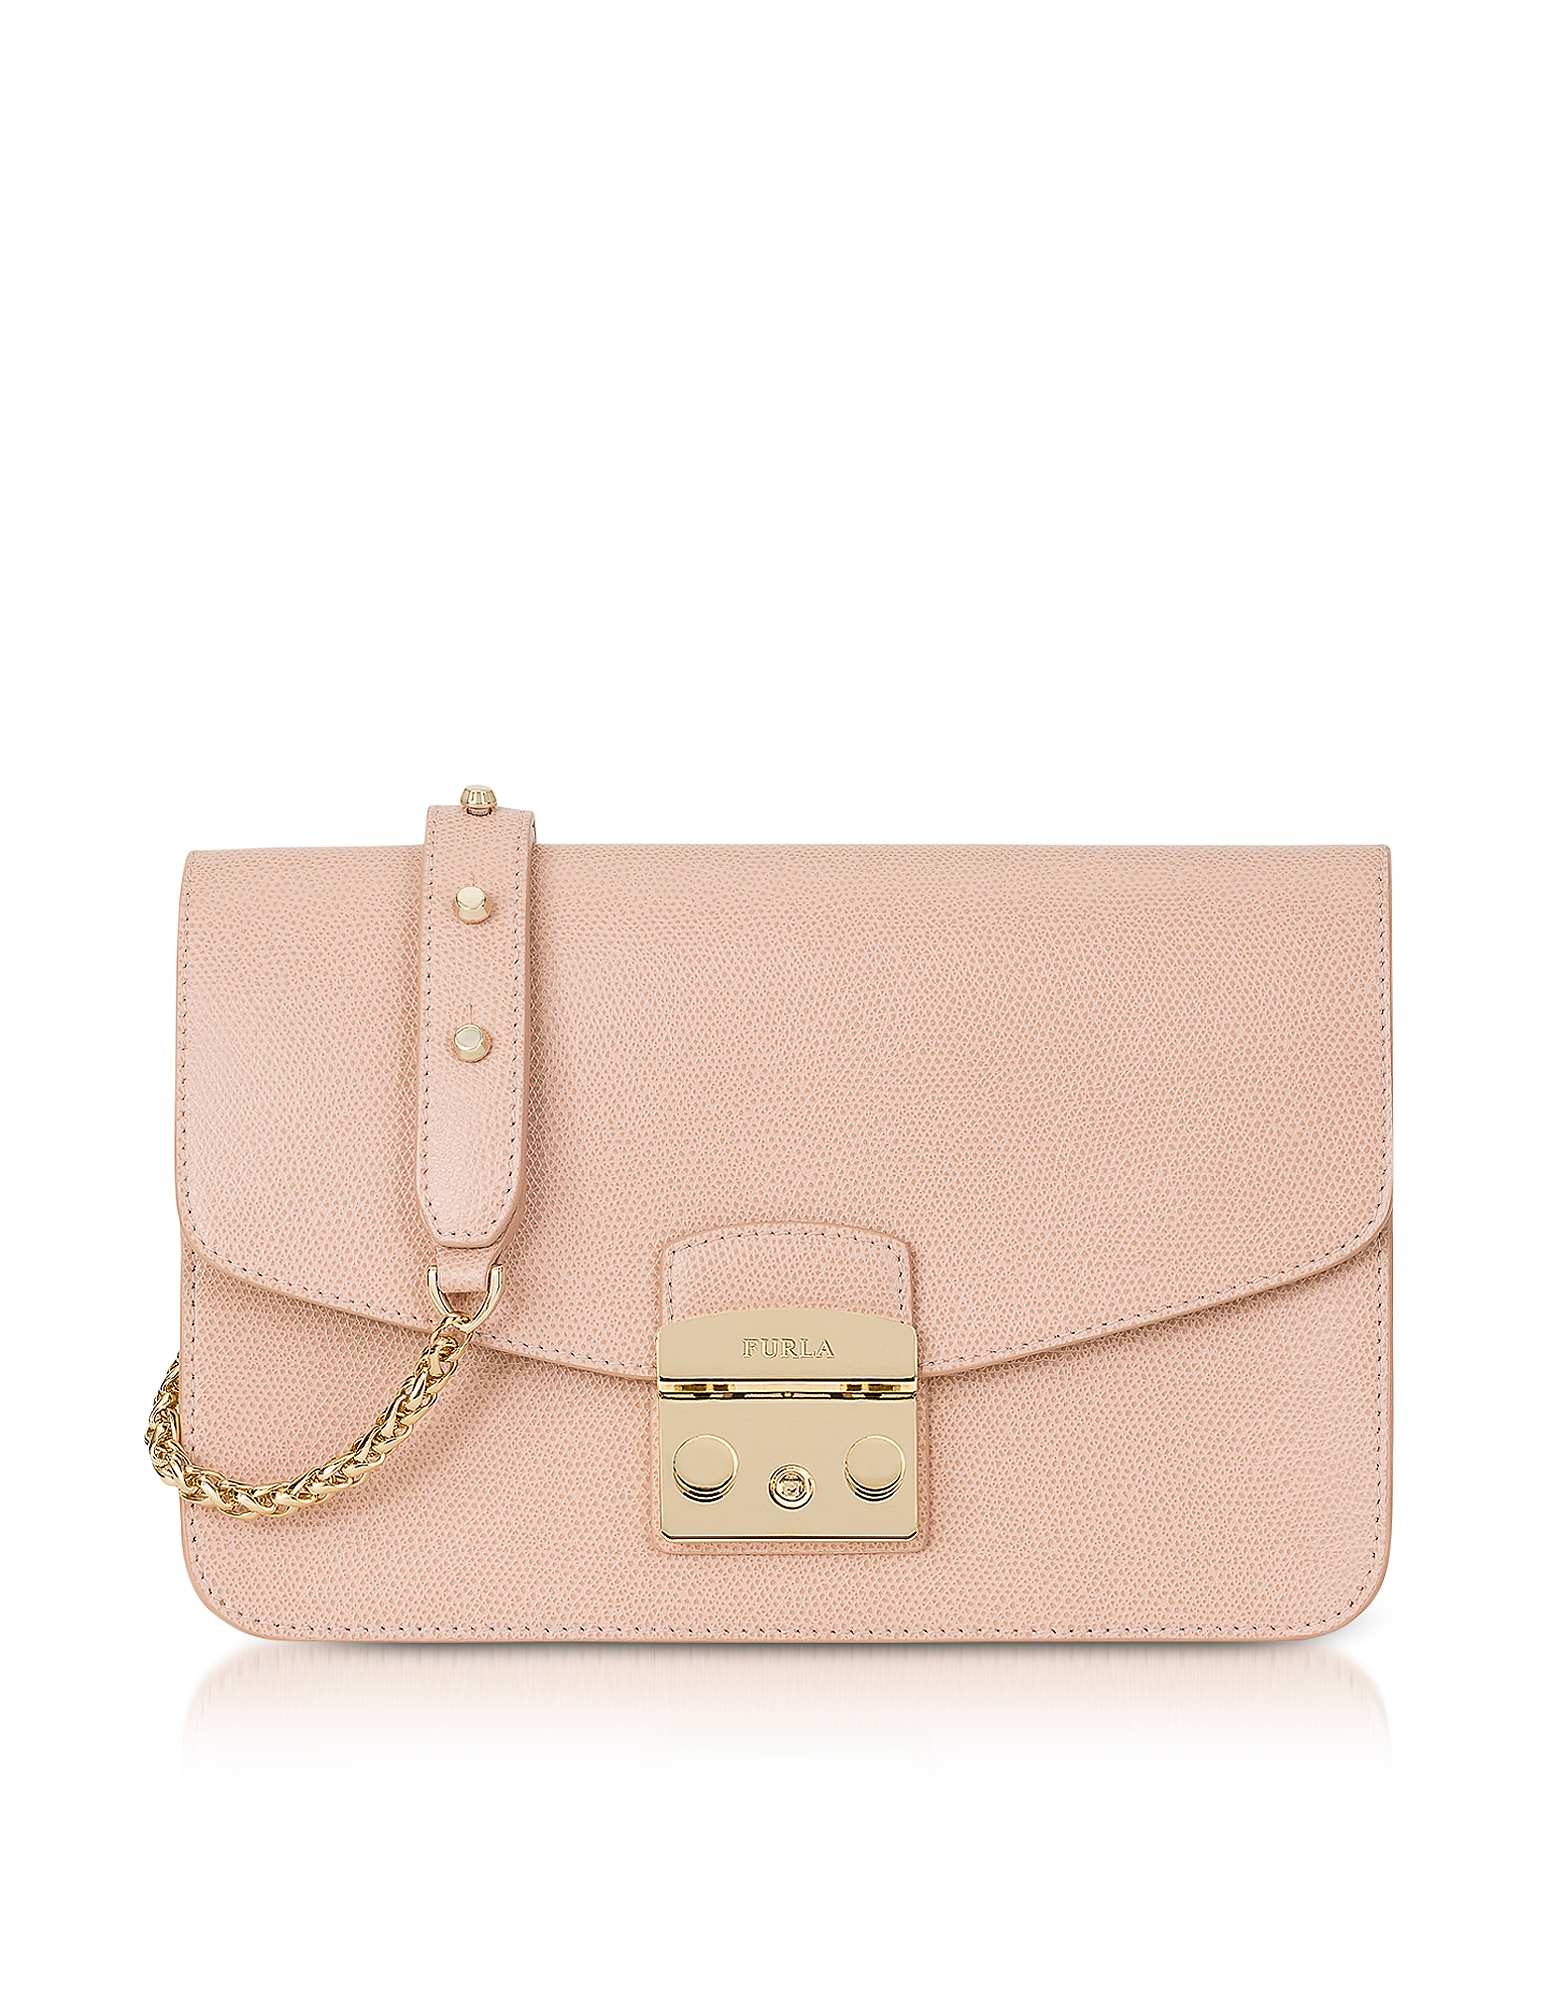 Furla Handbags, Moonstone Metropolis Small Leather Shoulder Bag